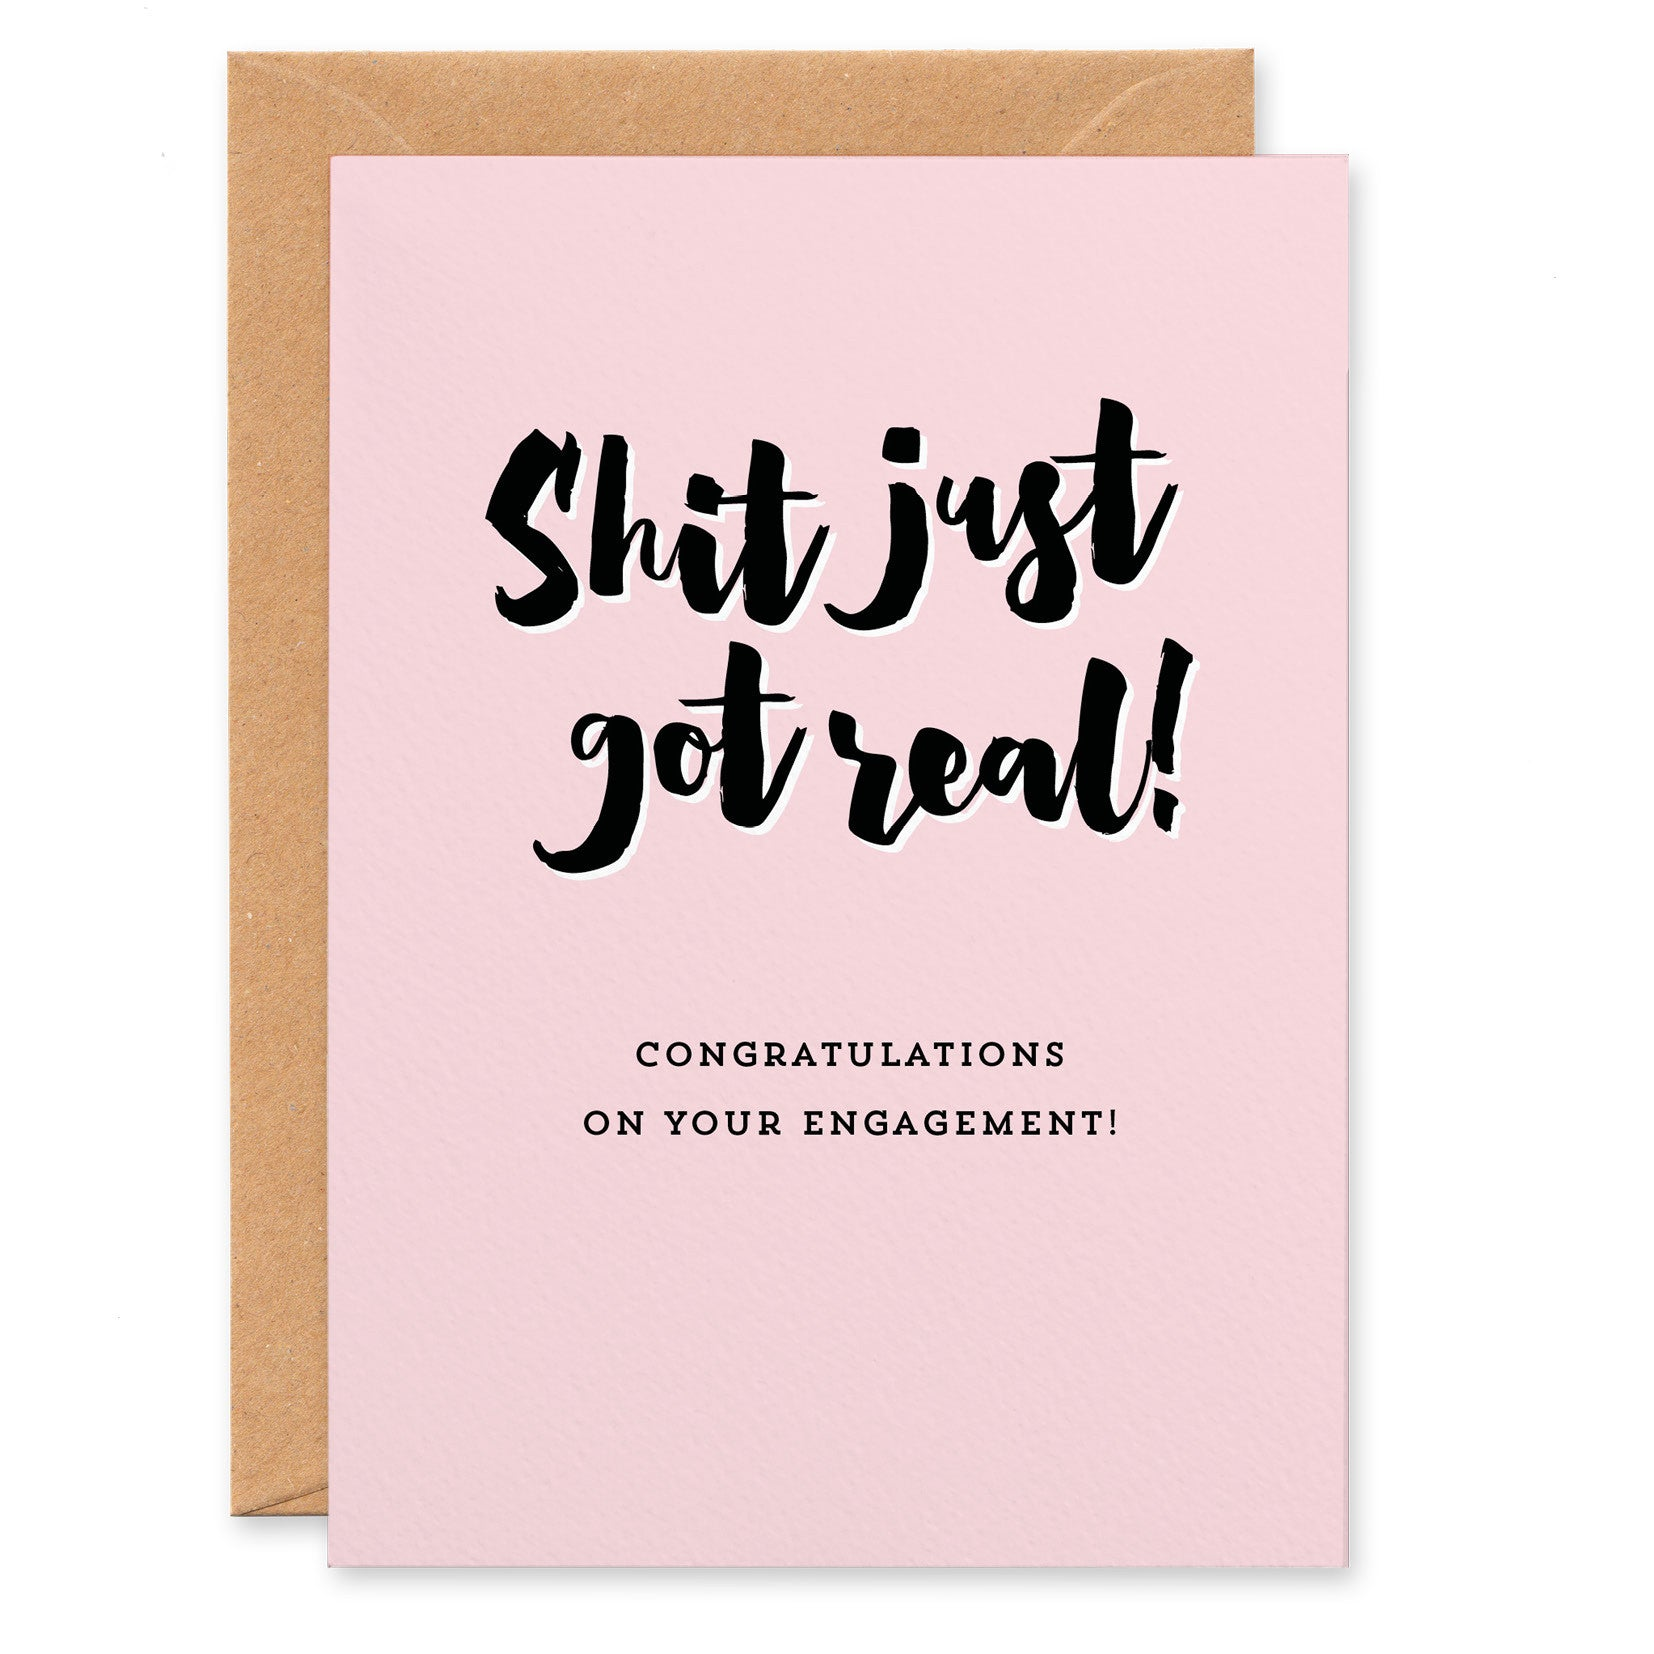 'Shit Just Got Real!' Engagement Congratulations Card - Project Pretty